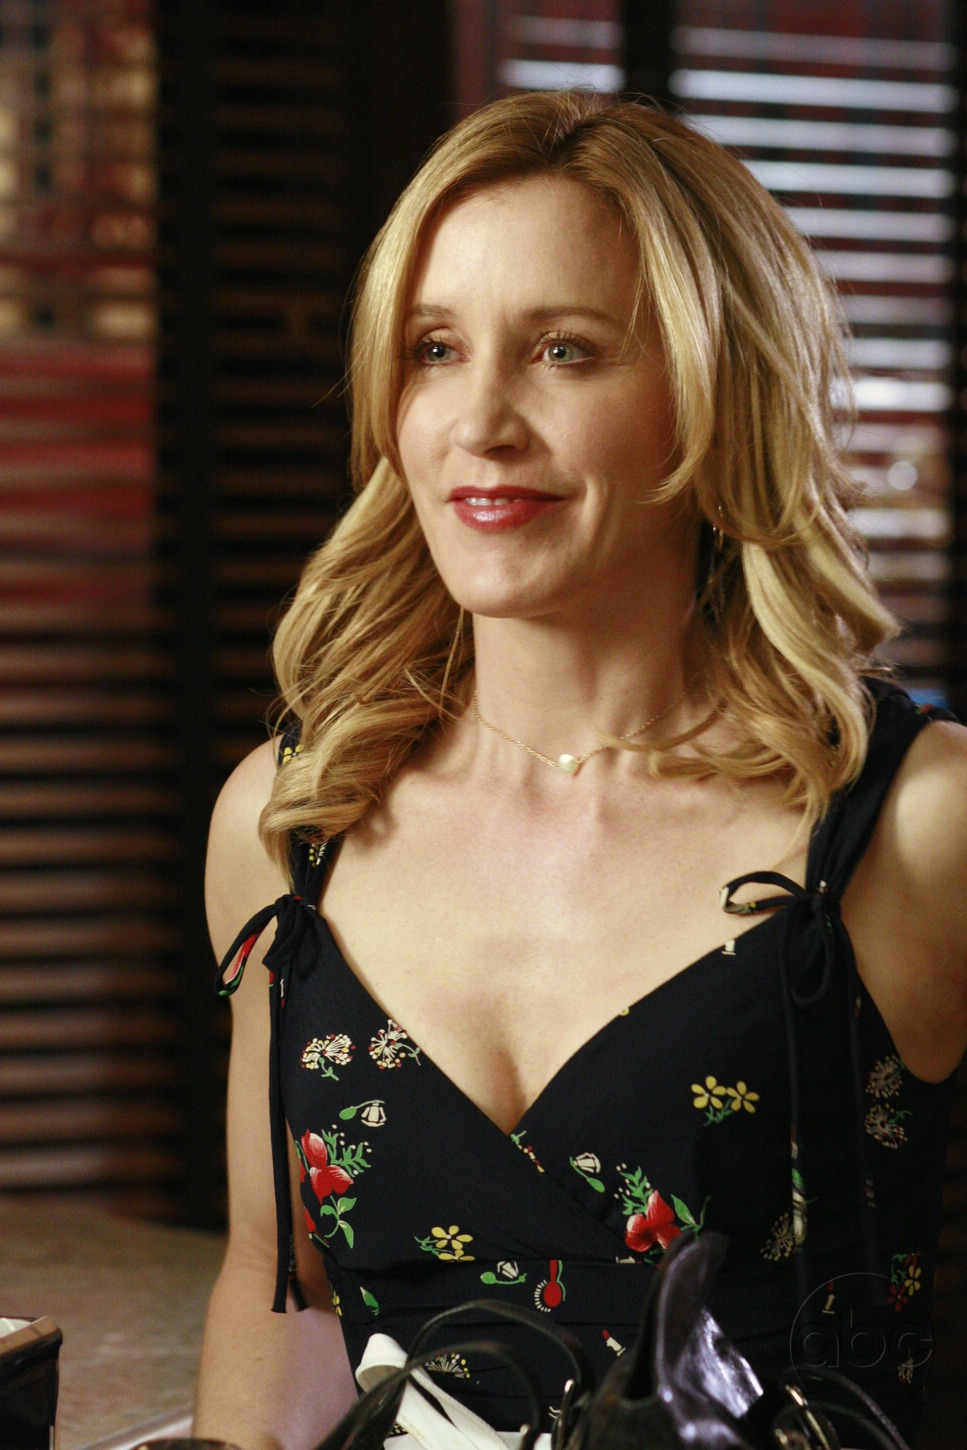 cf5a20804bc Desperate Housewives - Felicity Huffman Photo (32299335) - Fanpop